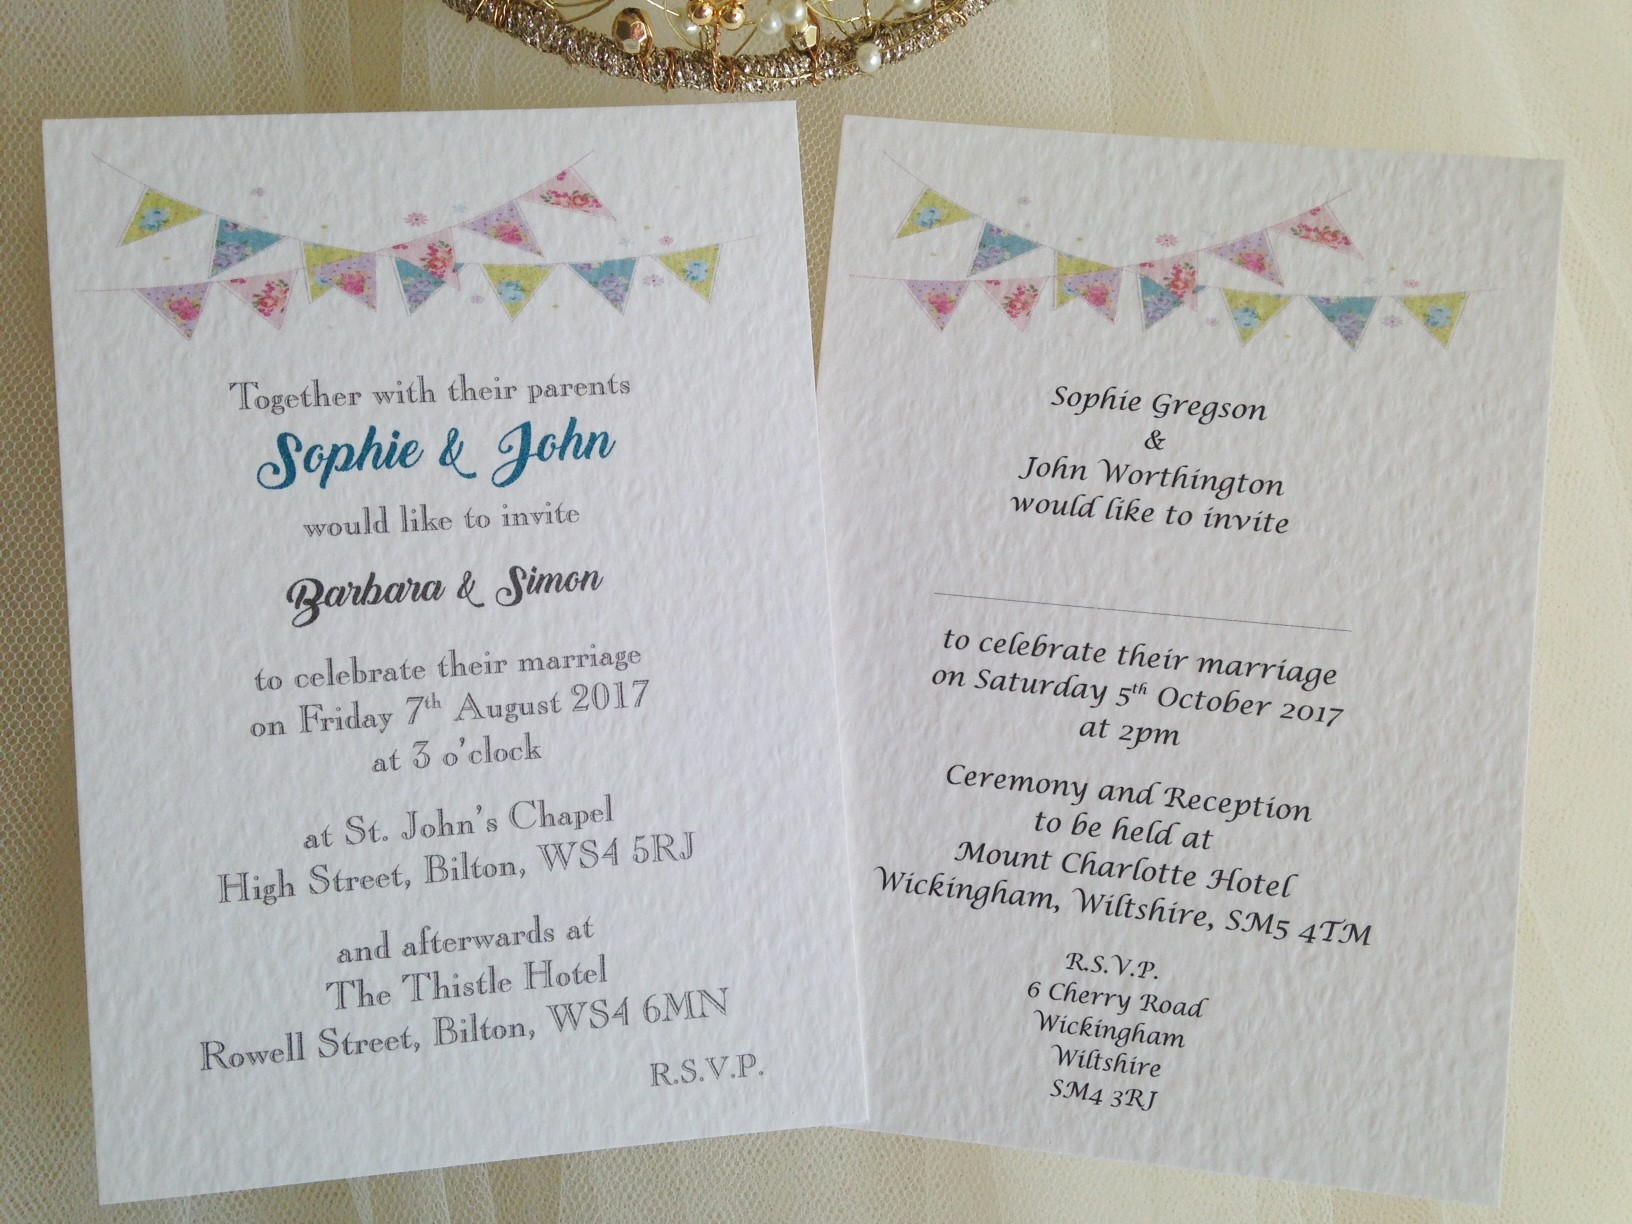 Wedding Invitations England: Wedding Invitations Under £1